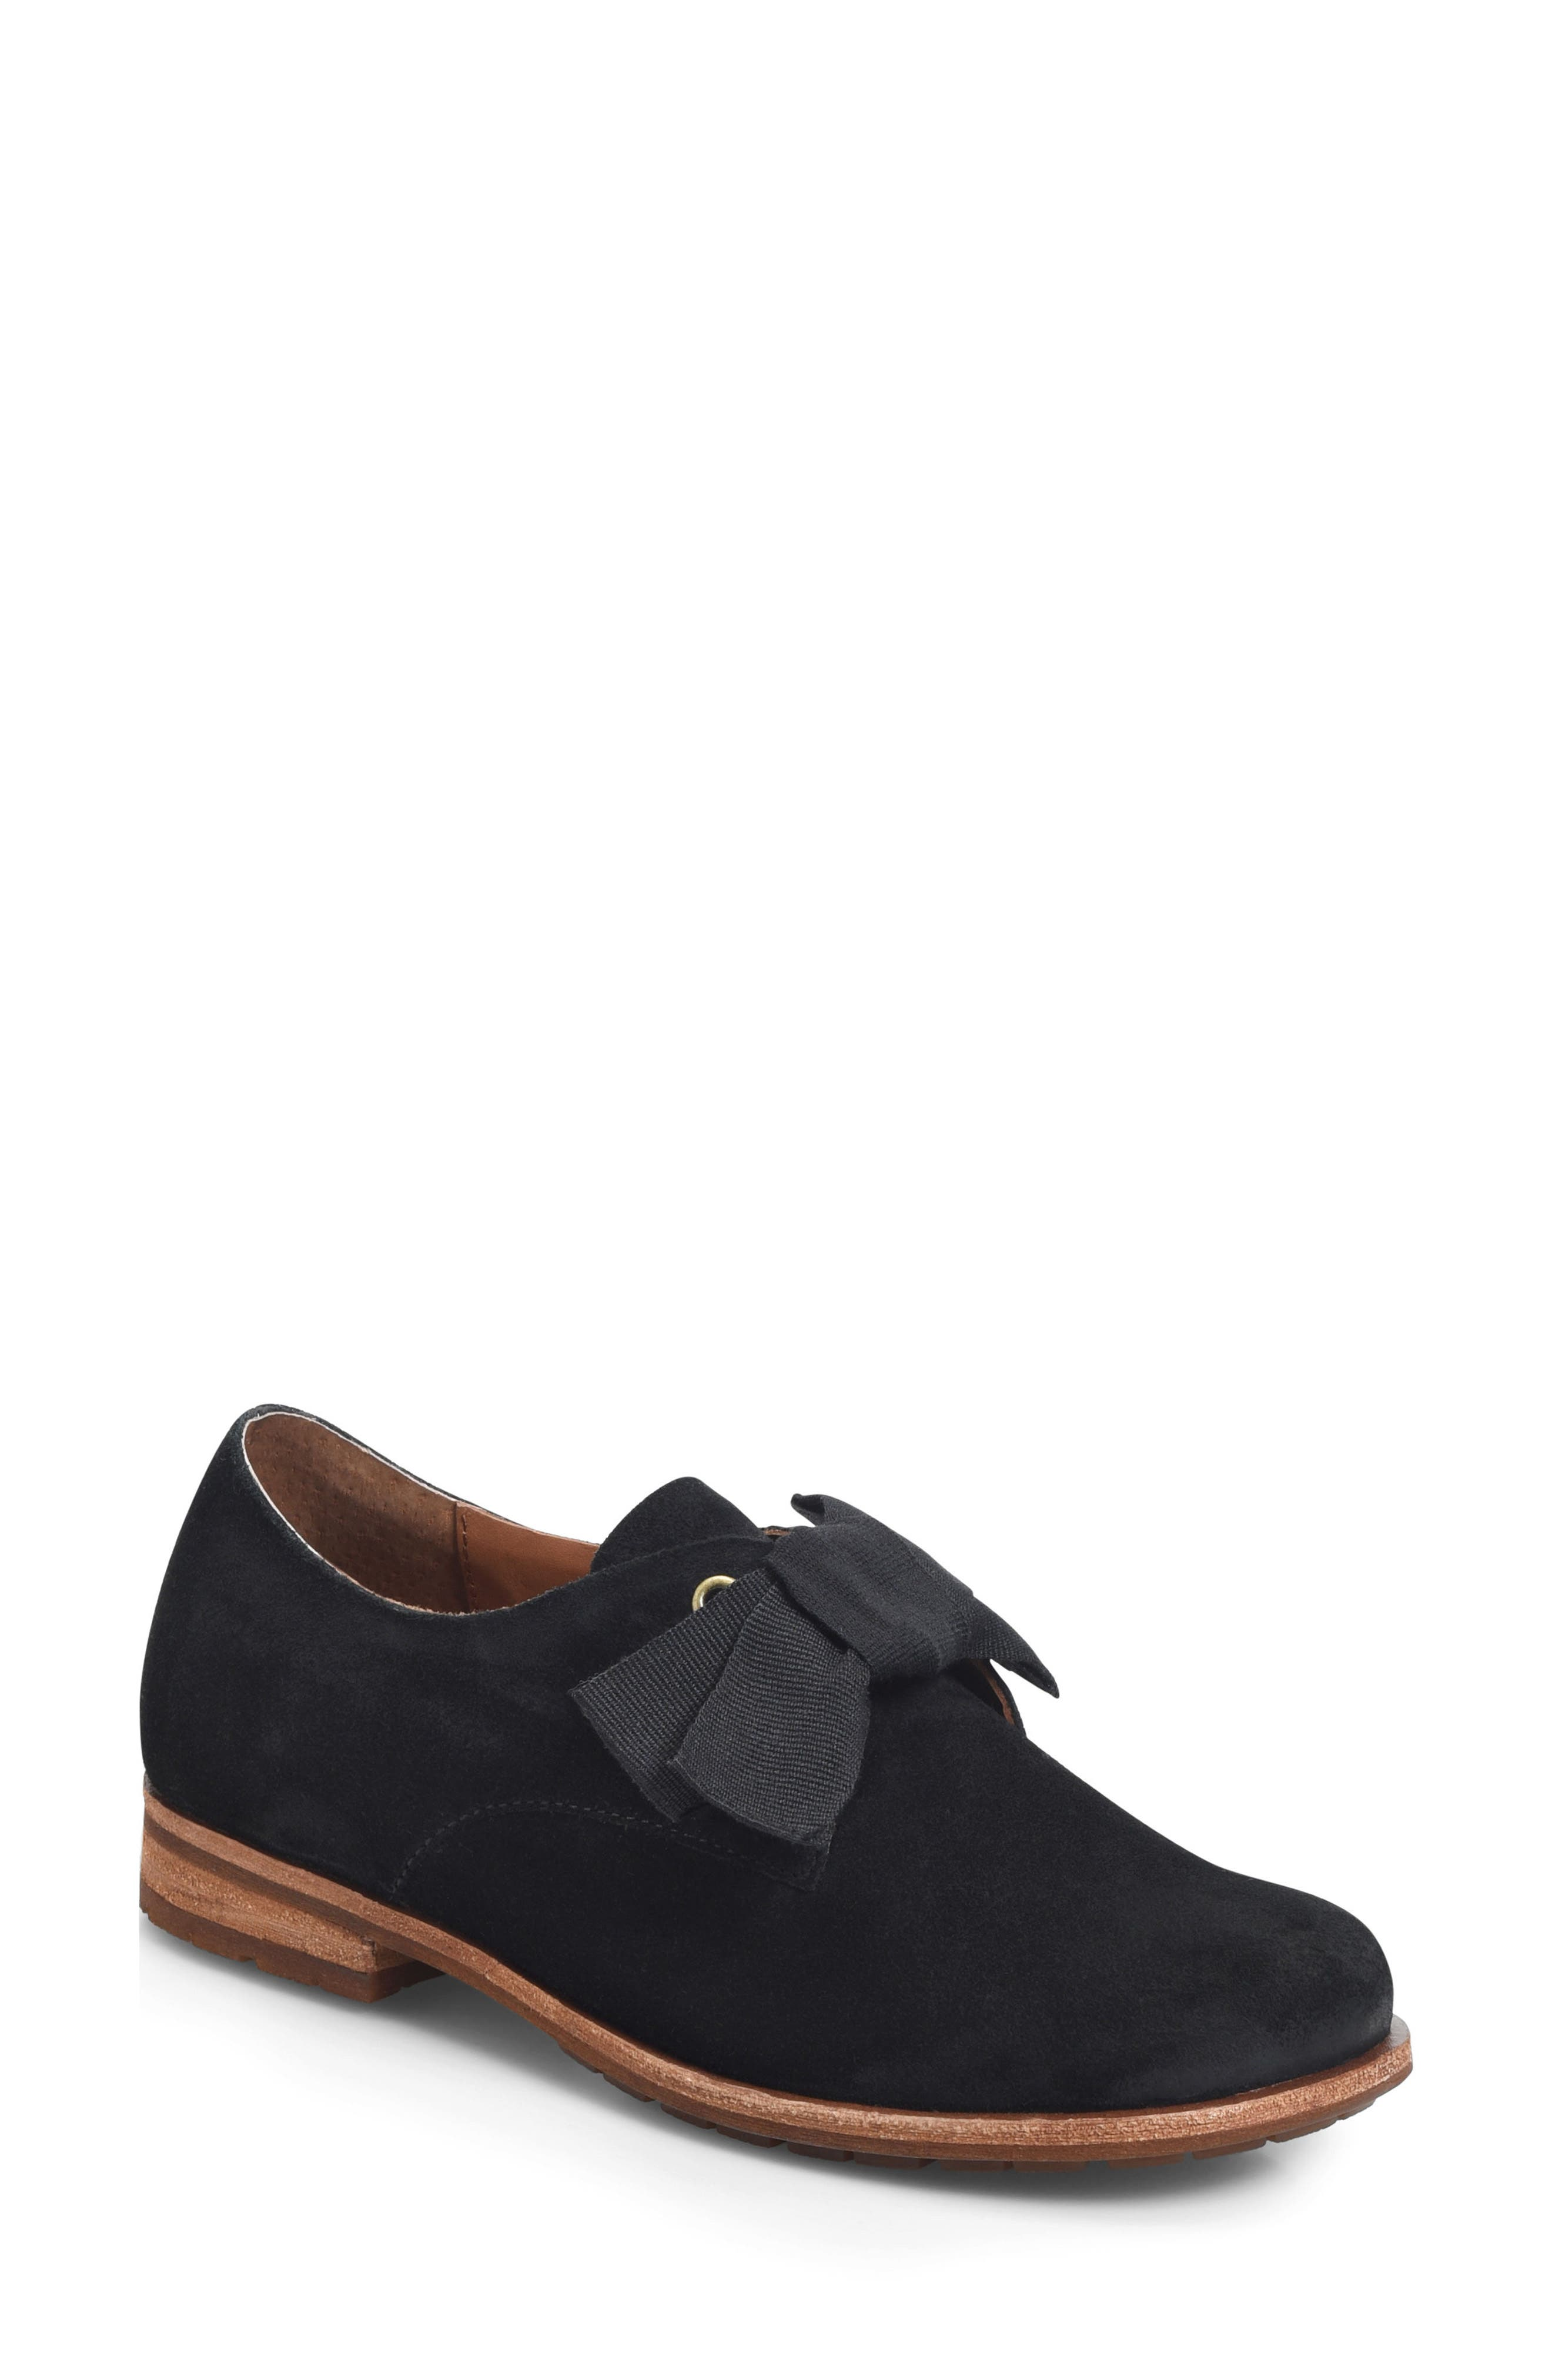 Kork-Ease Beryl Bow Flat, Black